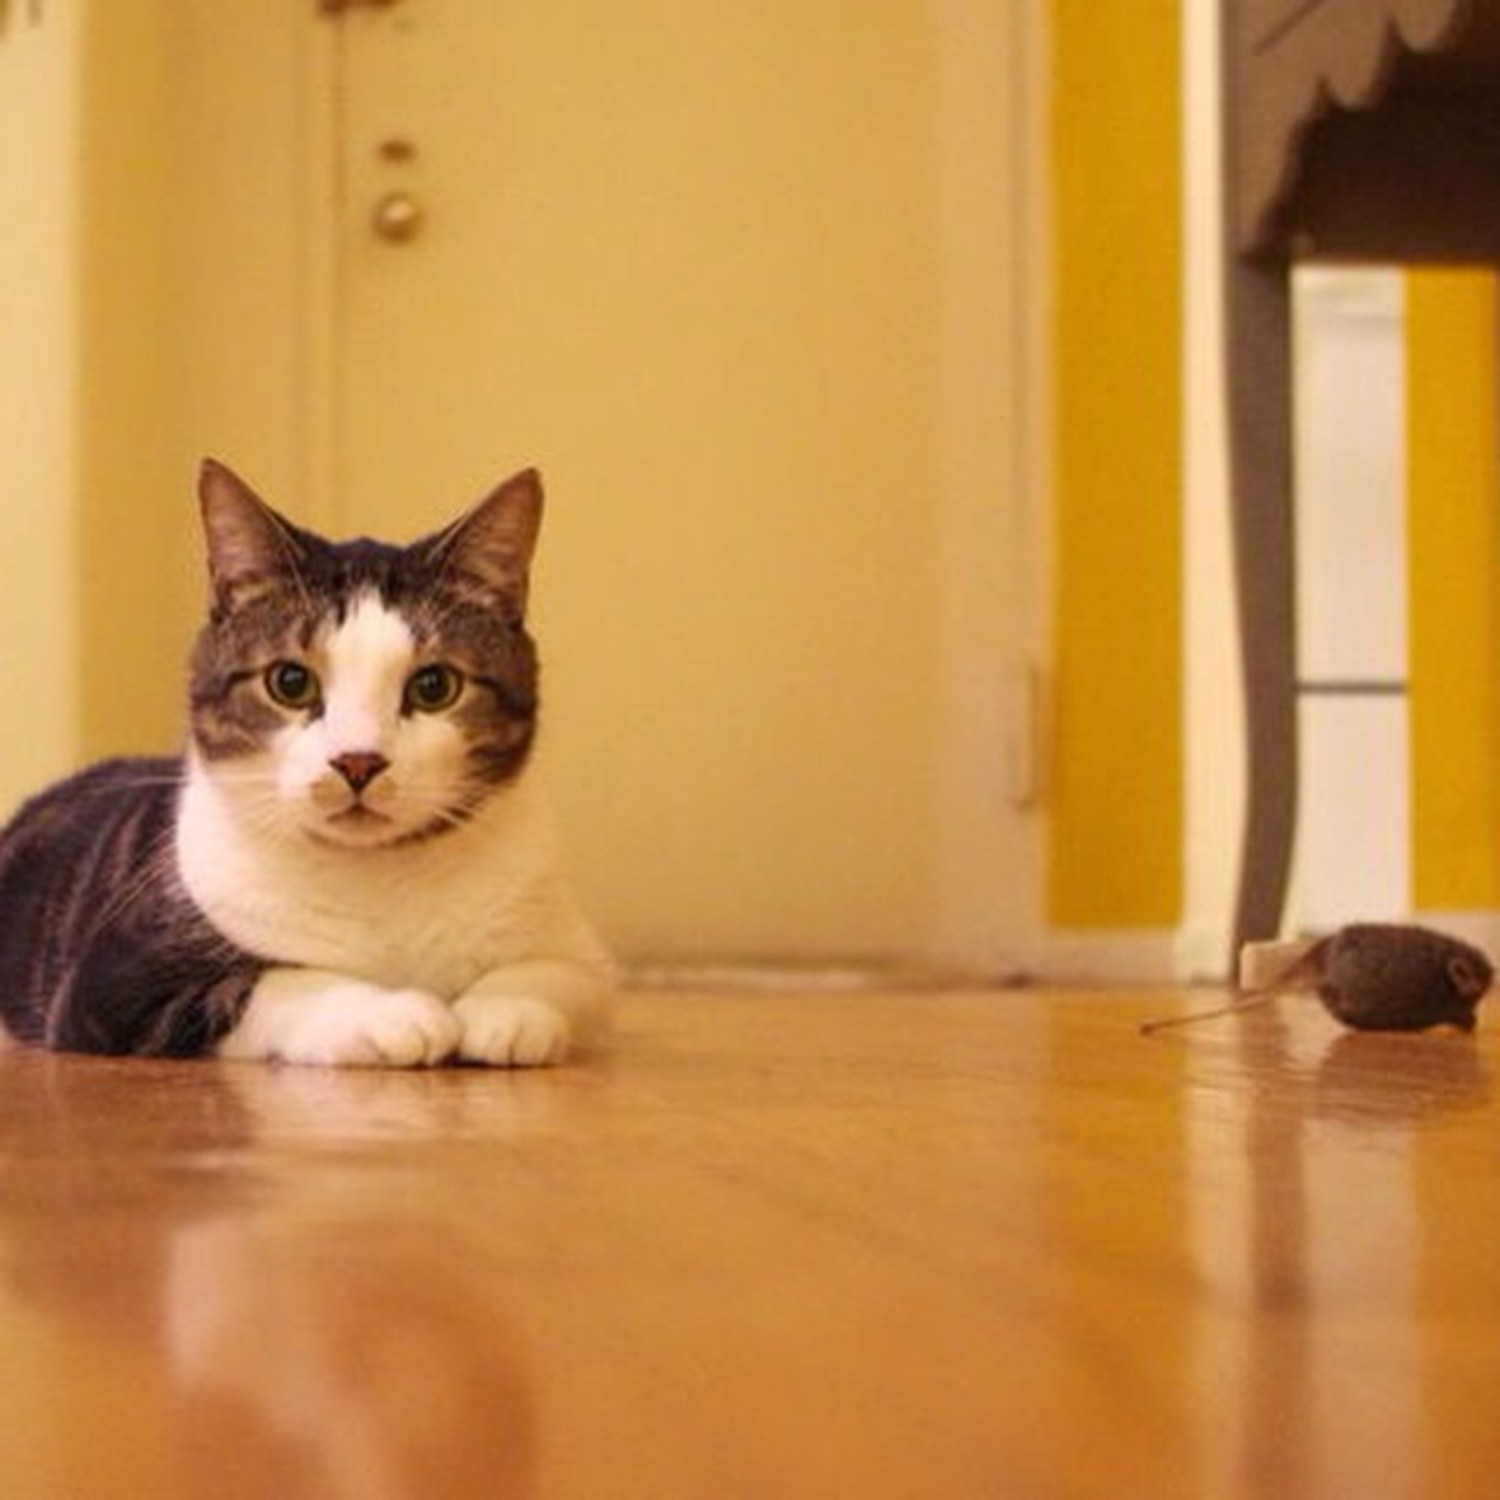 """""""I heard this mouse on the floor and I was like 'Not in my house!' then I killed it. Pretty quick too."""" """"That mouse there? That's a toy."""" """"No it's not, it's a dead mouse. It's been dead for months."""" """"Ok."""" - Tanooki, Queens  #felinesofnewyork #cats #catsofinstagram #humansofnewyork"""